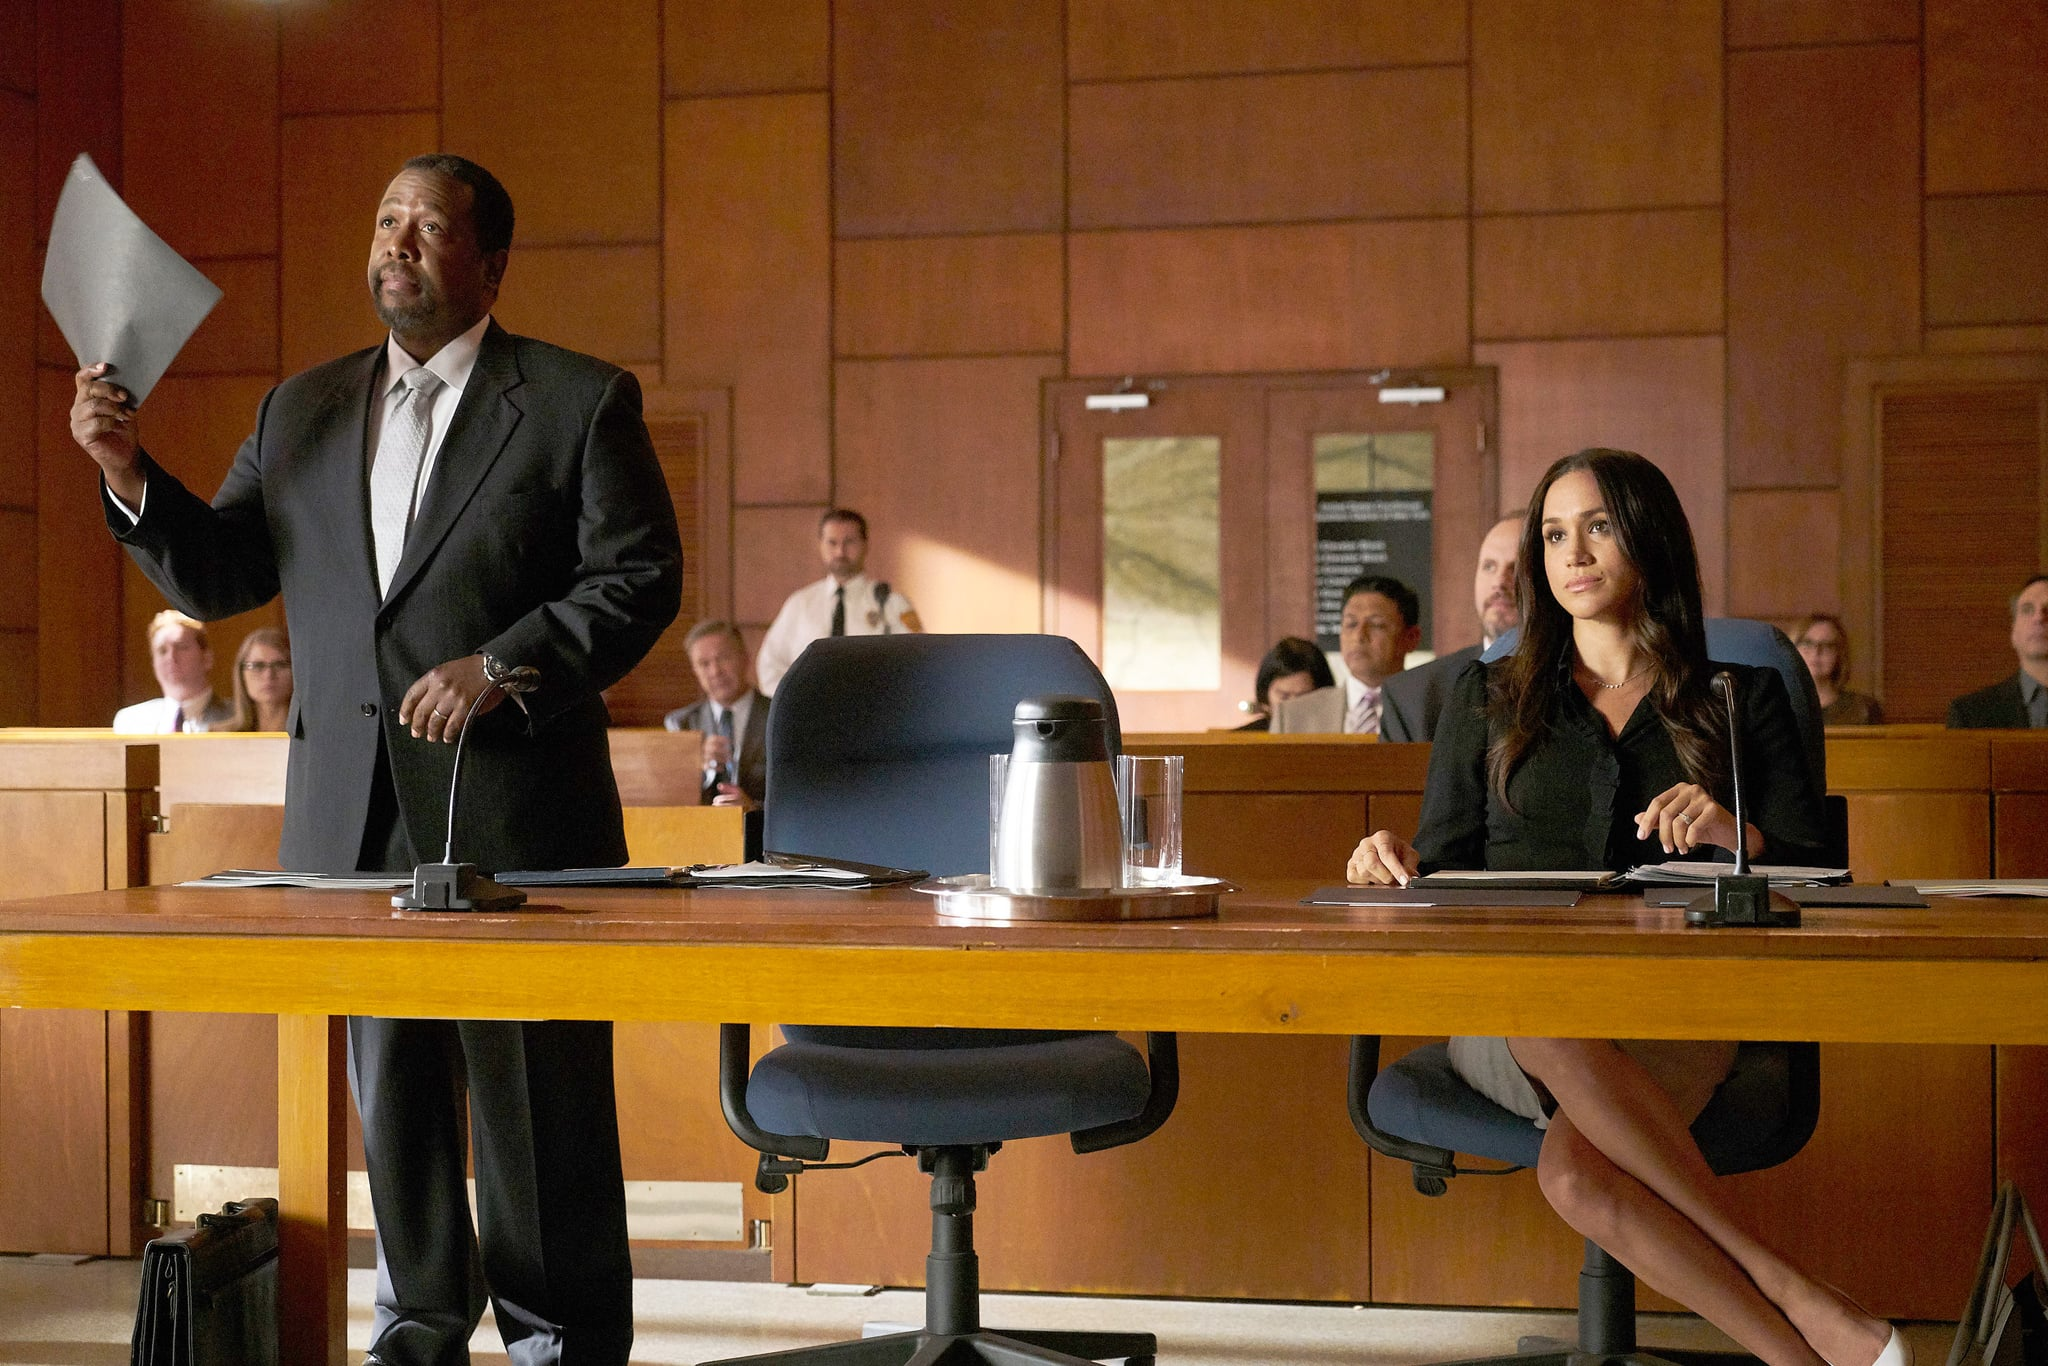 SUITS, from left: Wendell Pierce, Meghan Markle, 'Shame', (Season 7, ep. 709, aired Sept. 6, 2017). photo: Ian Watson/ USA Network/courtesy Everett Collection